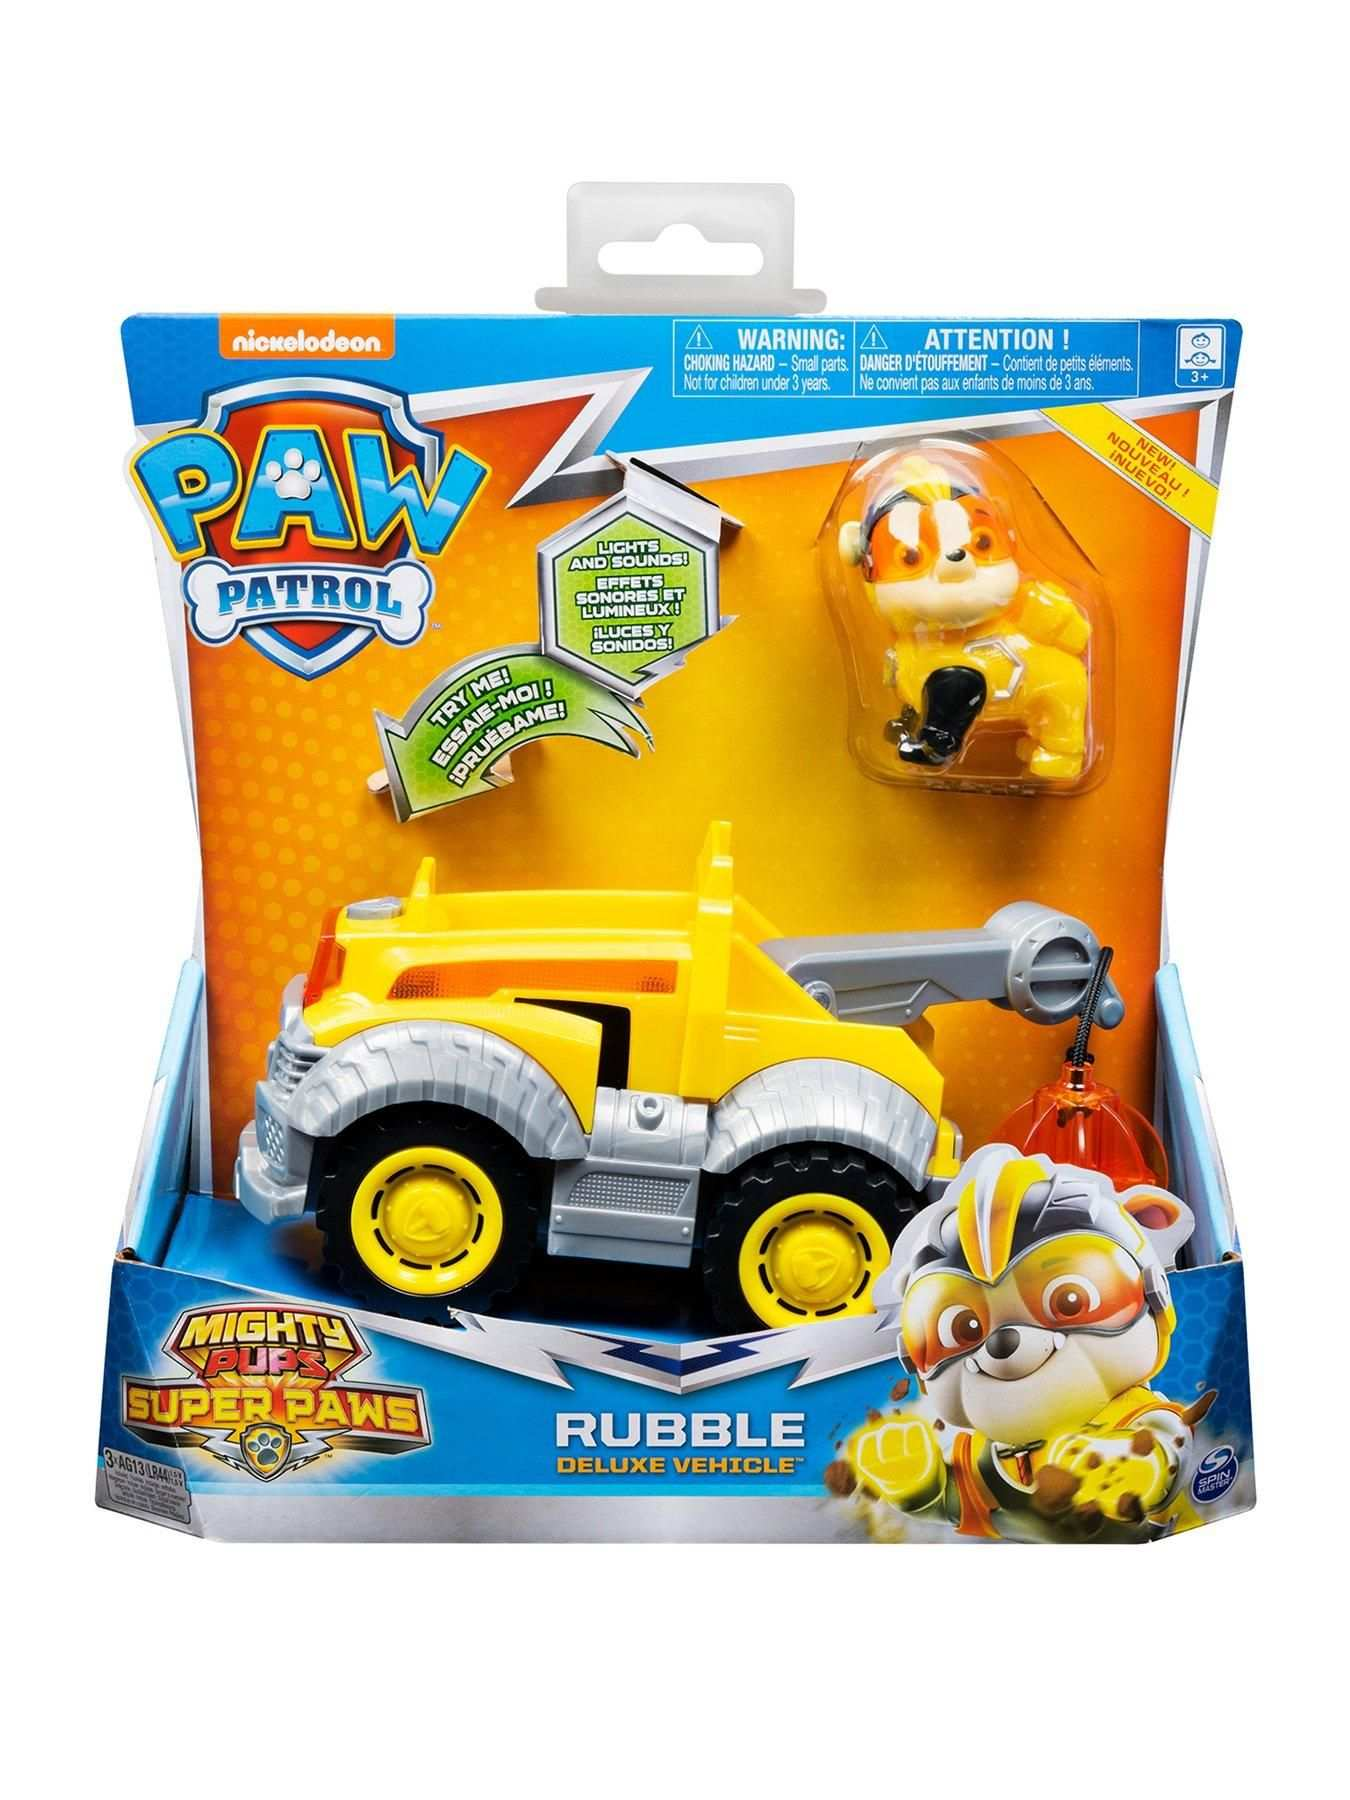 Paw Patrol Mighty Pups Super Paws Deluxe Vehicle Marshall Paw